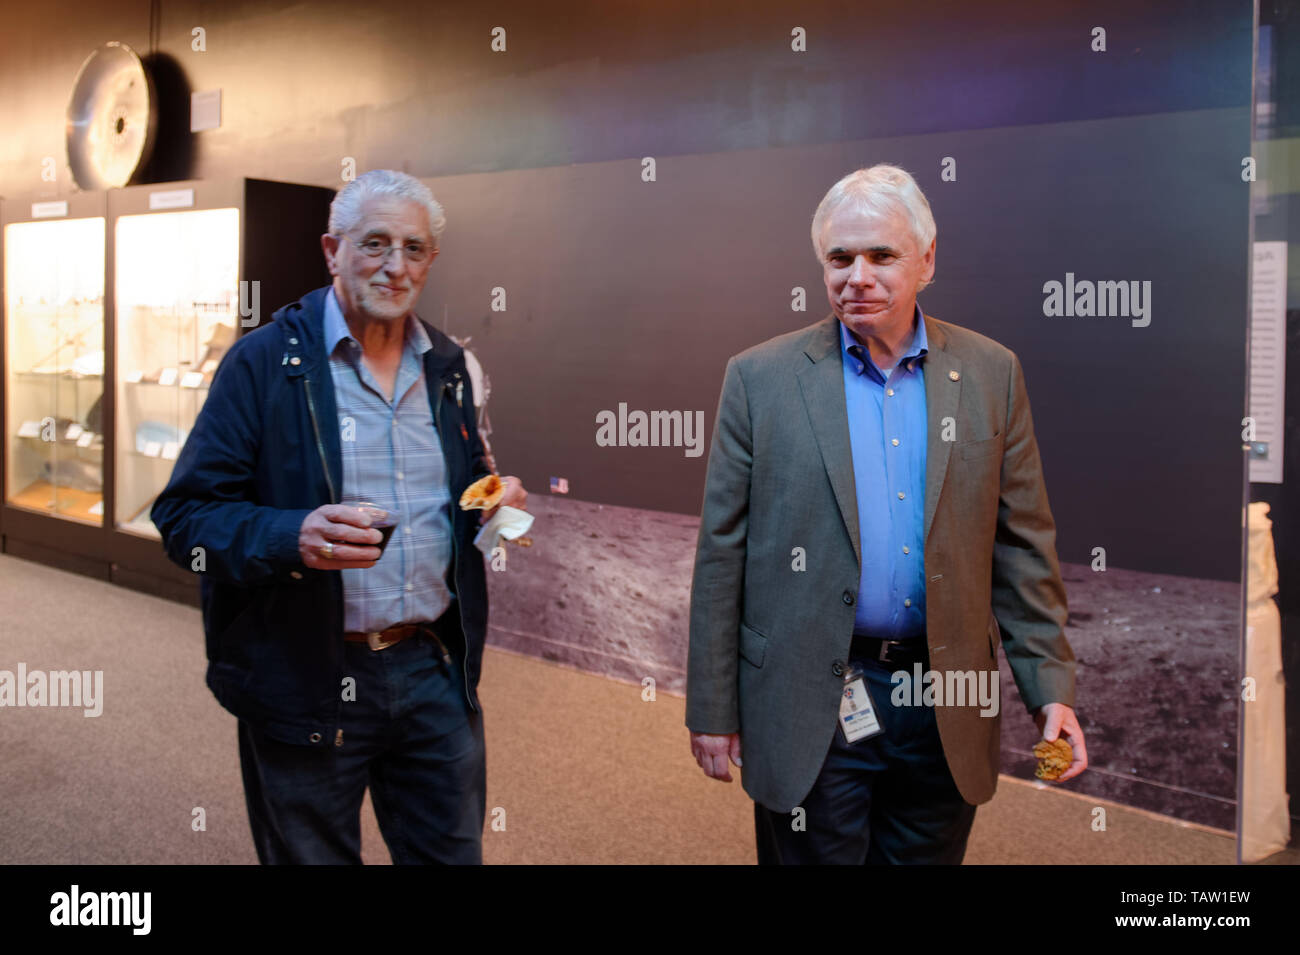 Garden City, New York, USA. 23rd May, 2019. At right, ANDREW PARTON, President of the Cradle of Aviation Museum, and a guest walk from a Reception to a talk during An Evening with Andrew Chaikin, an event that is part of the museum's celebration of 50th Anniversary of Apollo 11. Credit: Ann Parry/ZUMA Wire/Alamy Live News - Stock Image